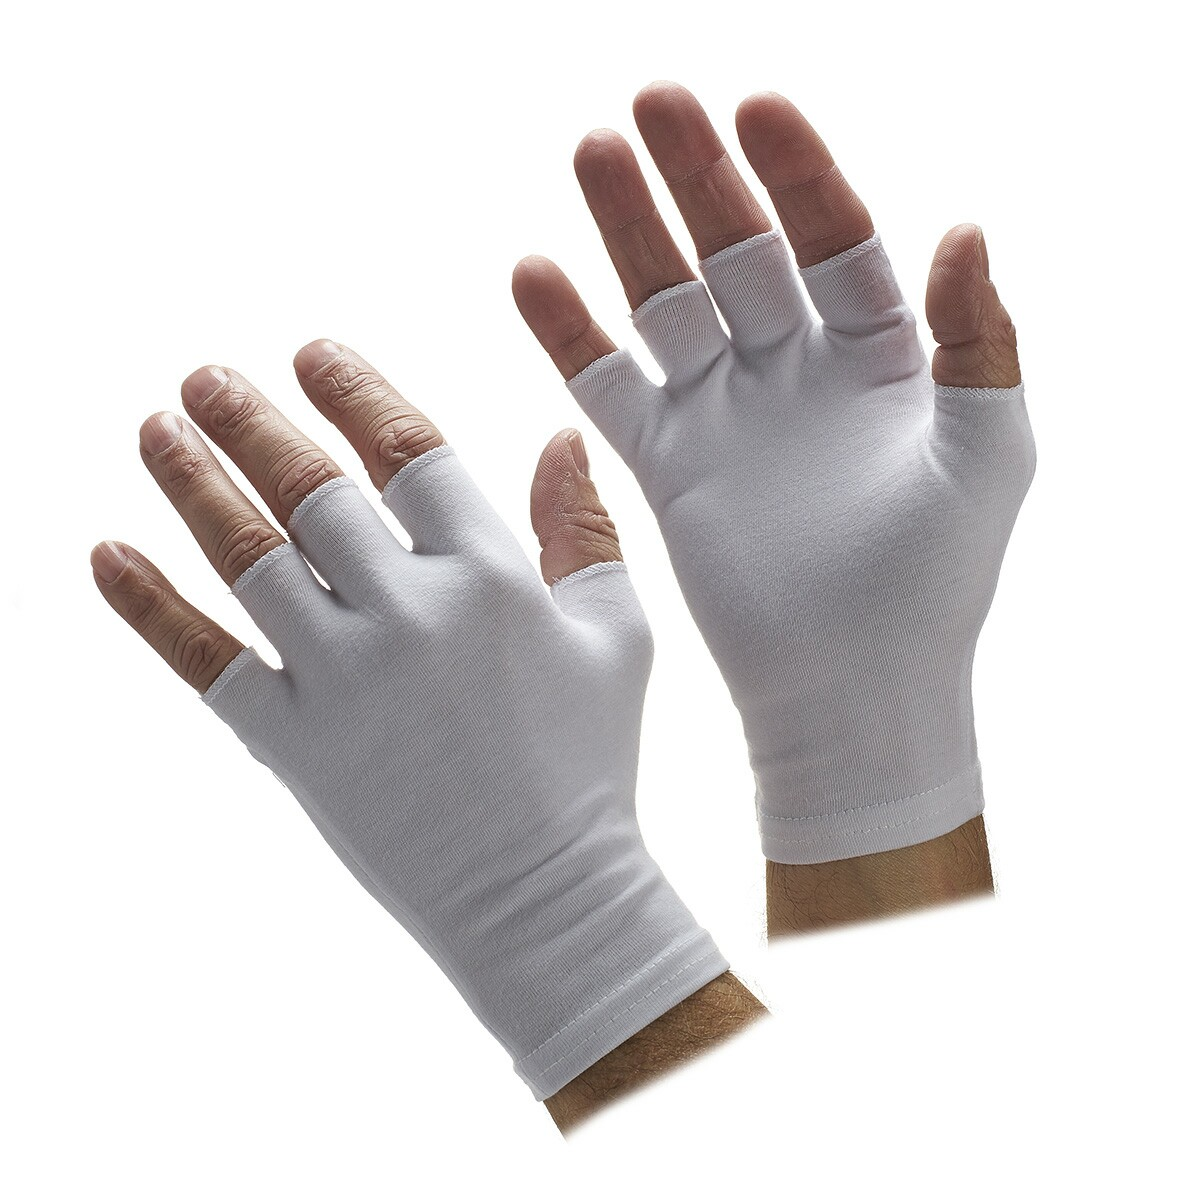 Black cotton gloves for eczema - Half Finger White Spandex Gloves Cotton